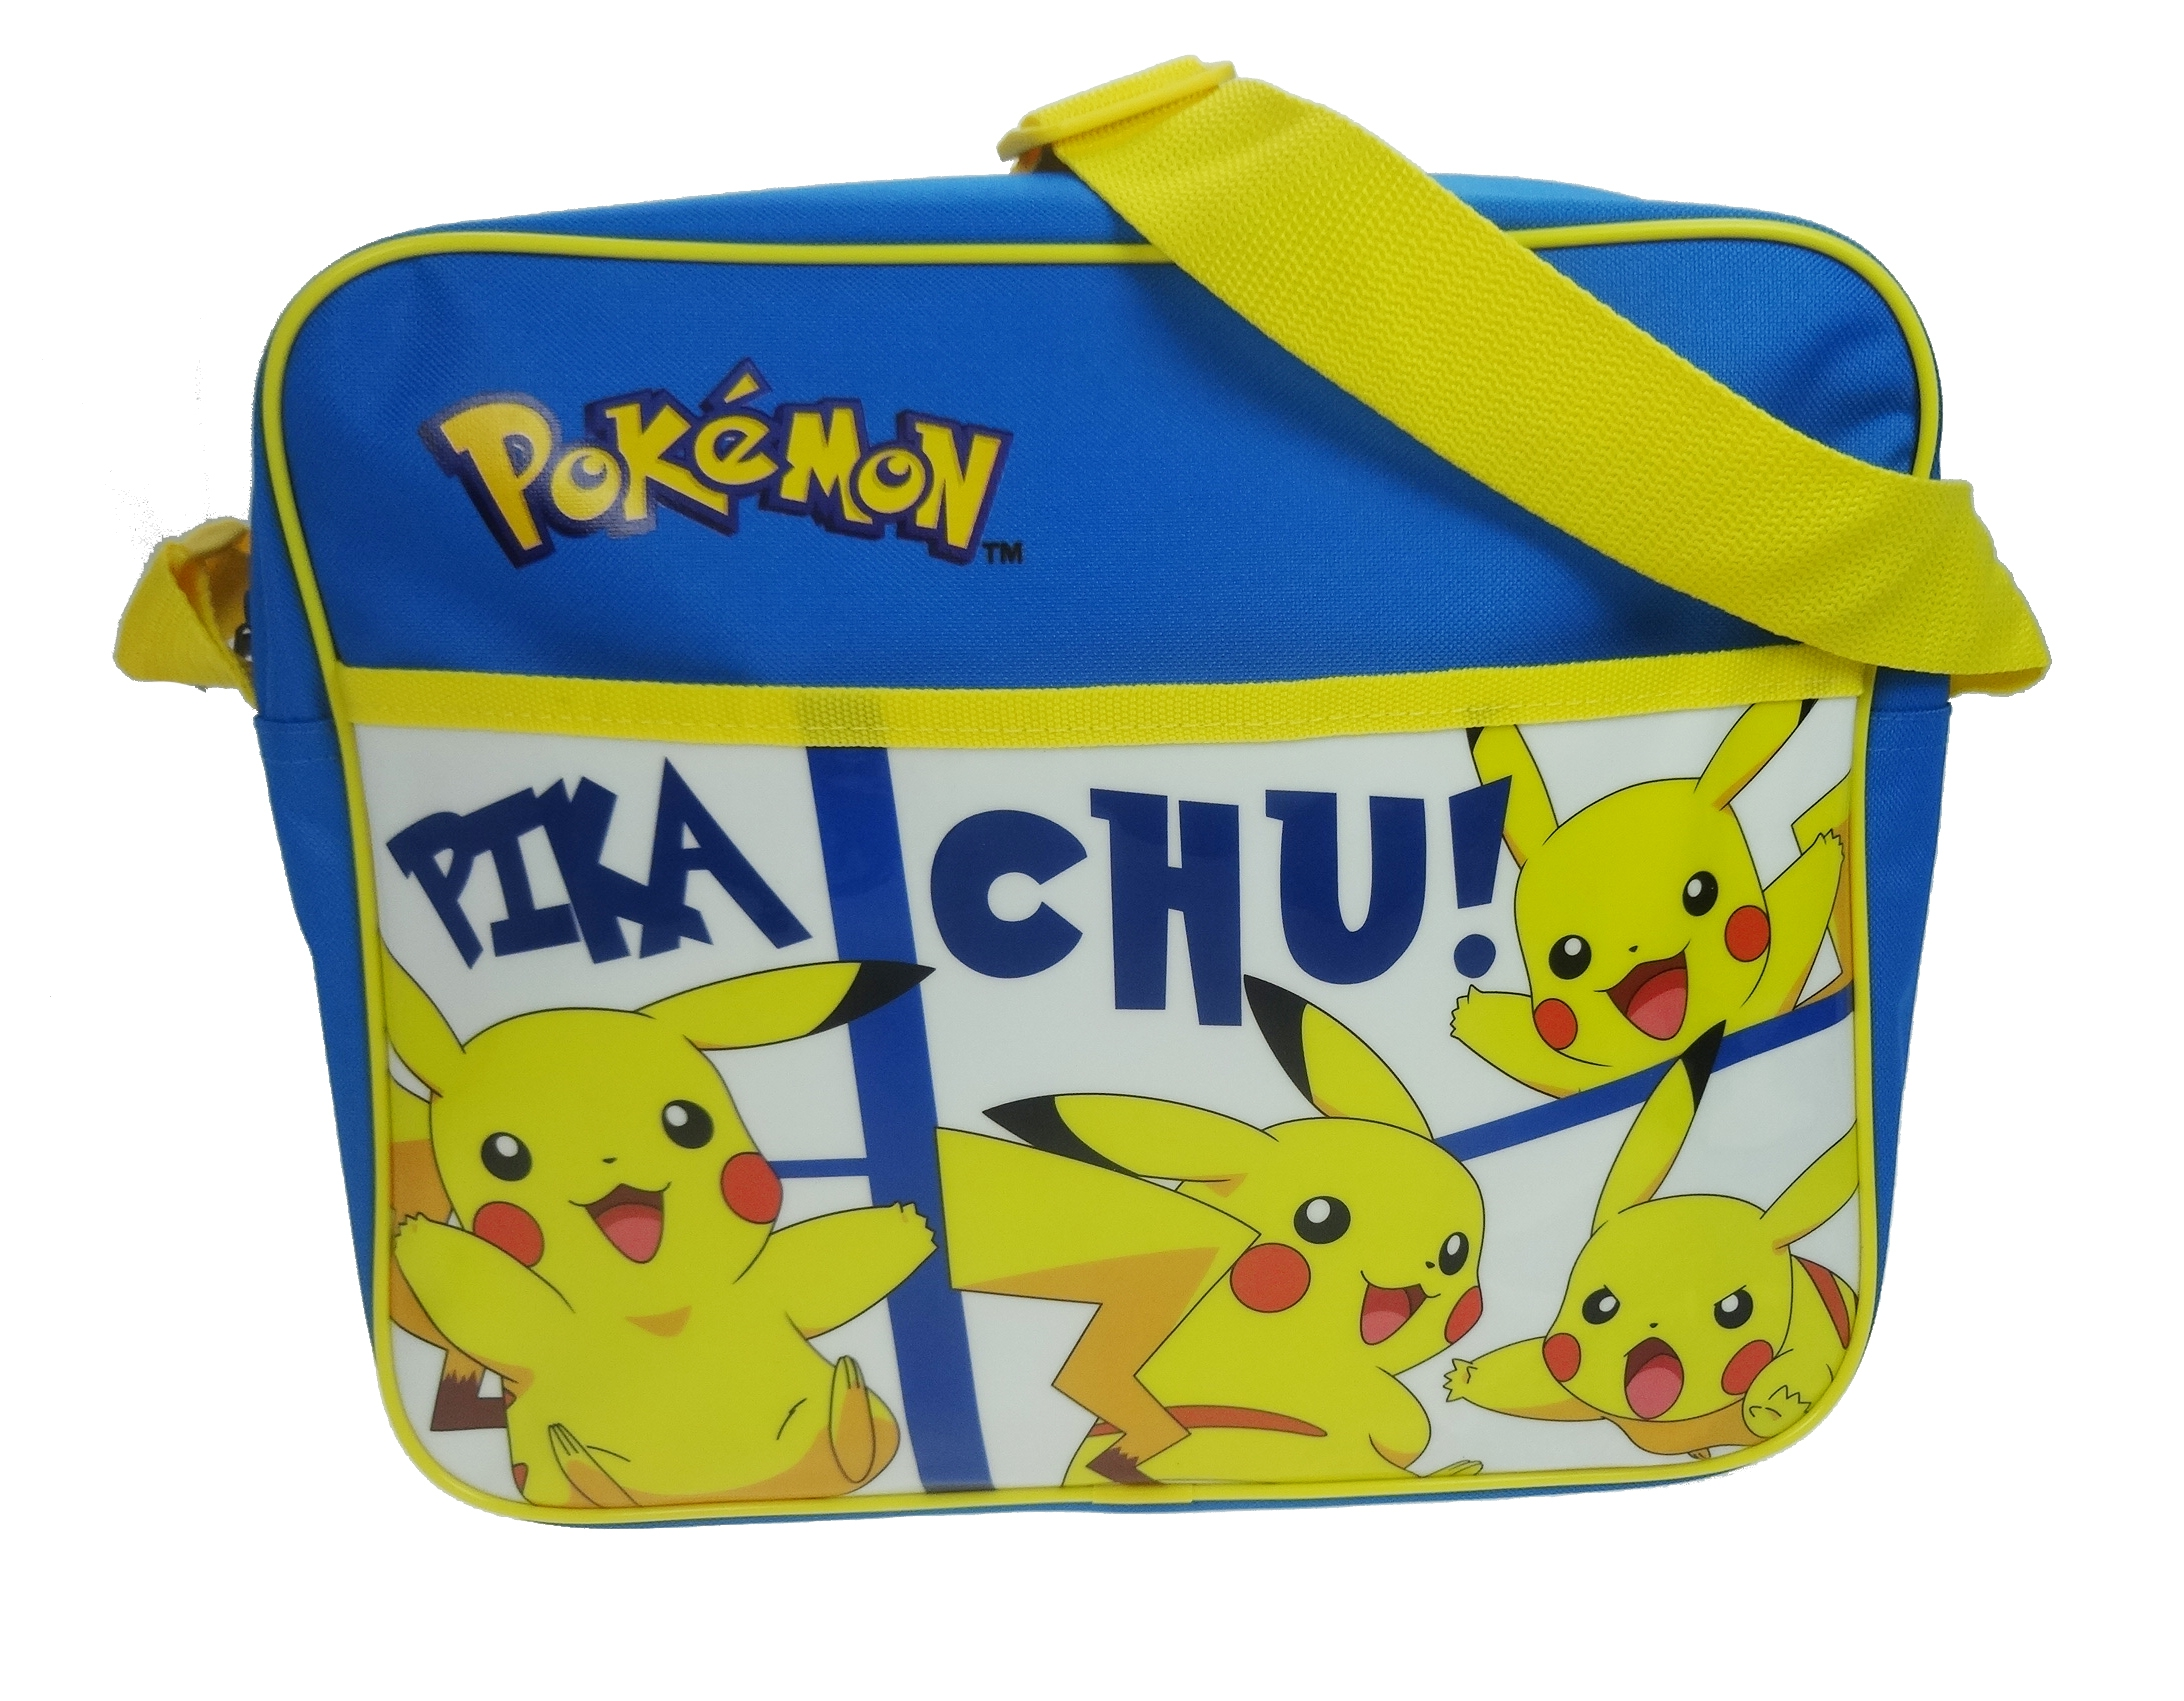 Pokemon 'Pikachu' Courier School Shoulder Bag